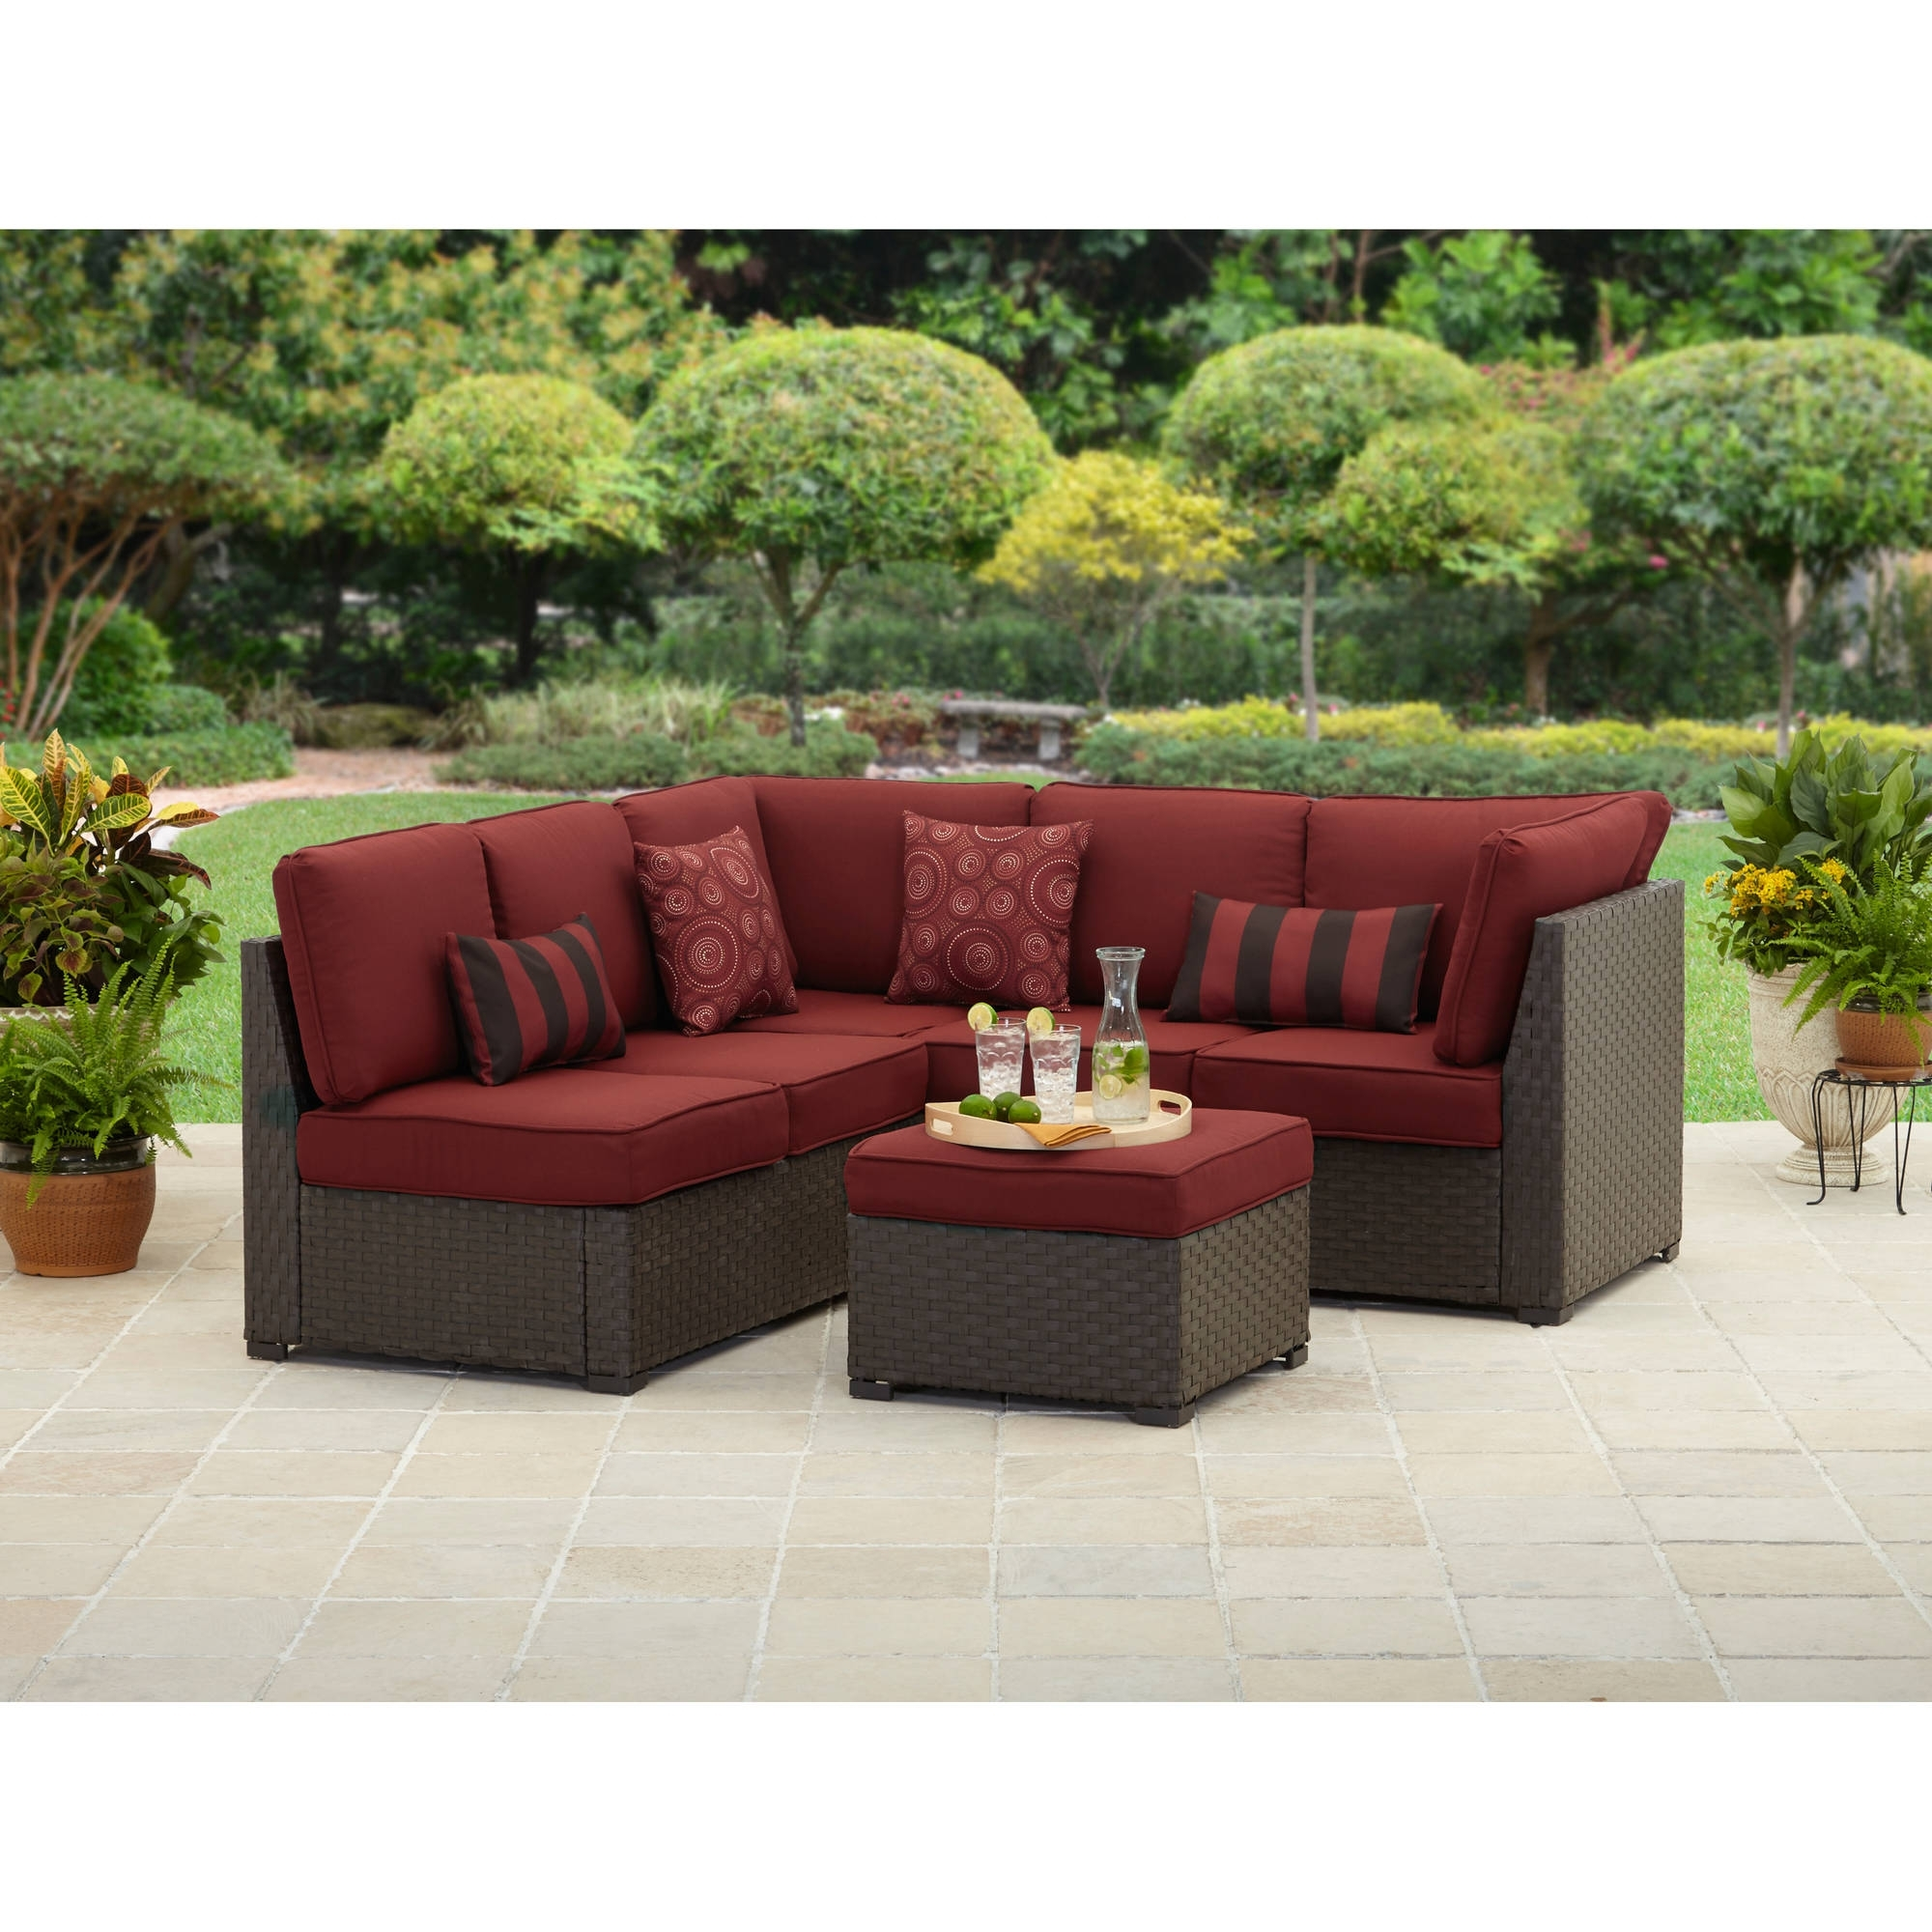 Better Homes And Gardens Rush Valley 3 Piece Outdoor Sectional In Most Recent Patio Conversation Sets At Walmart (View 4 of 15)